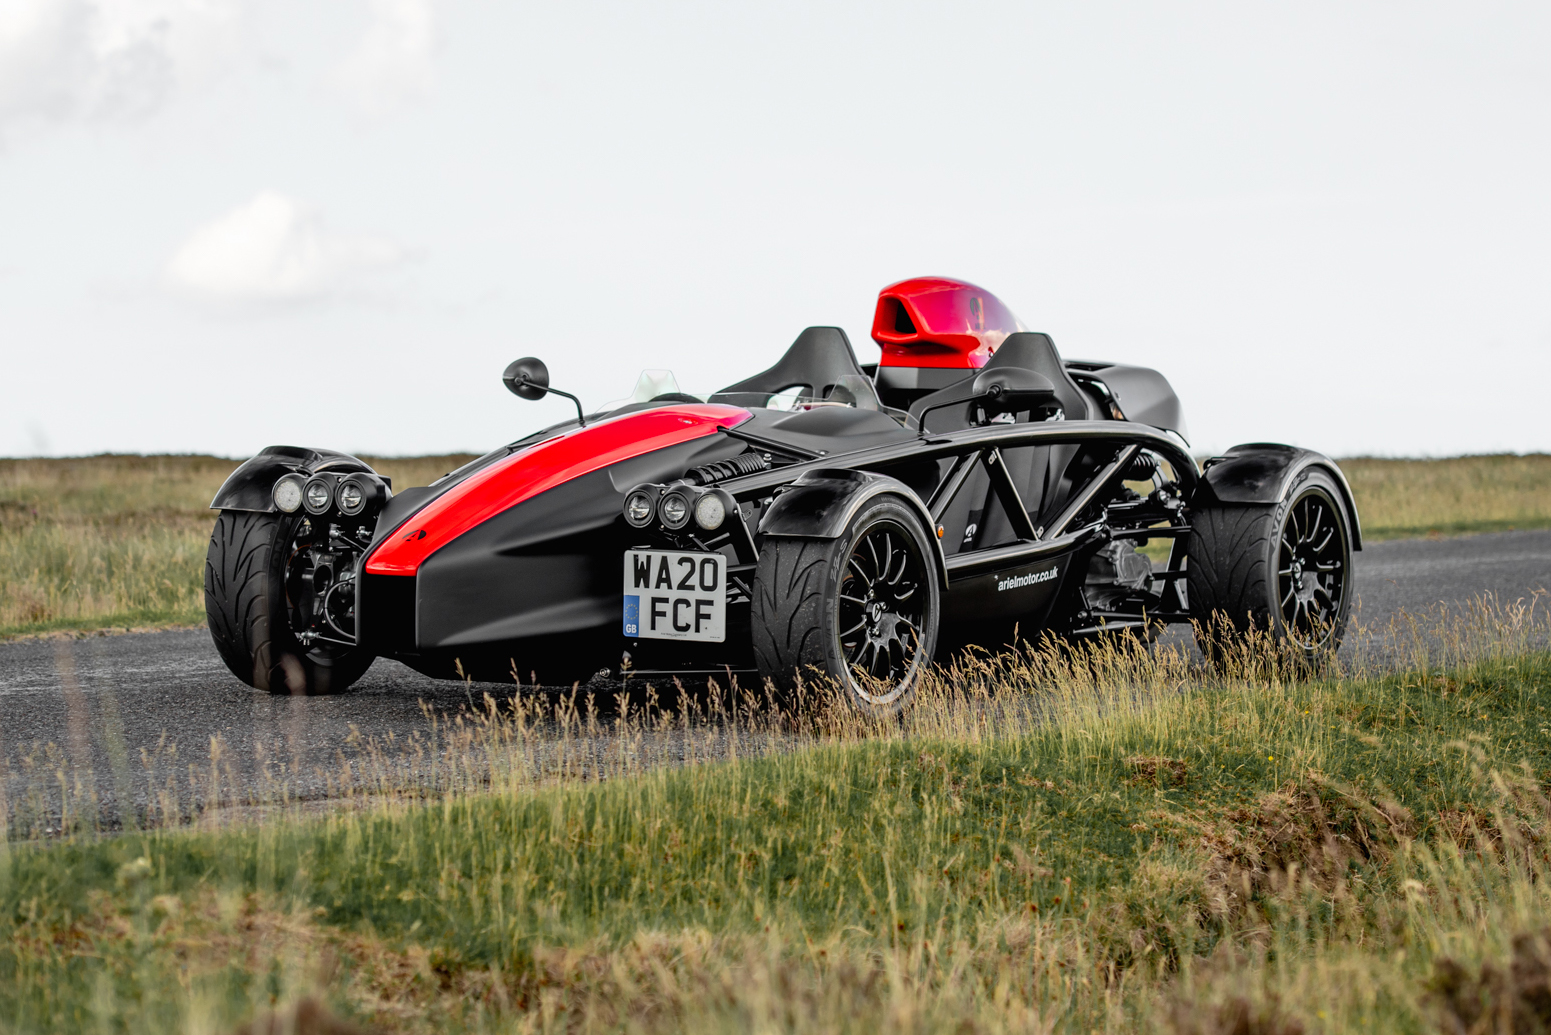 2020 ARIEL ATOM 4 - 700 MILES FROM NEW